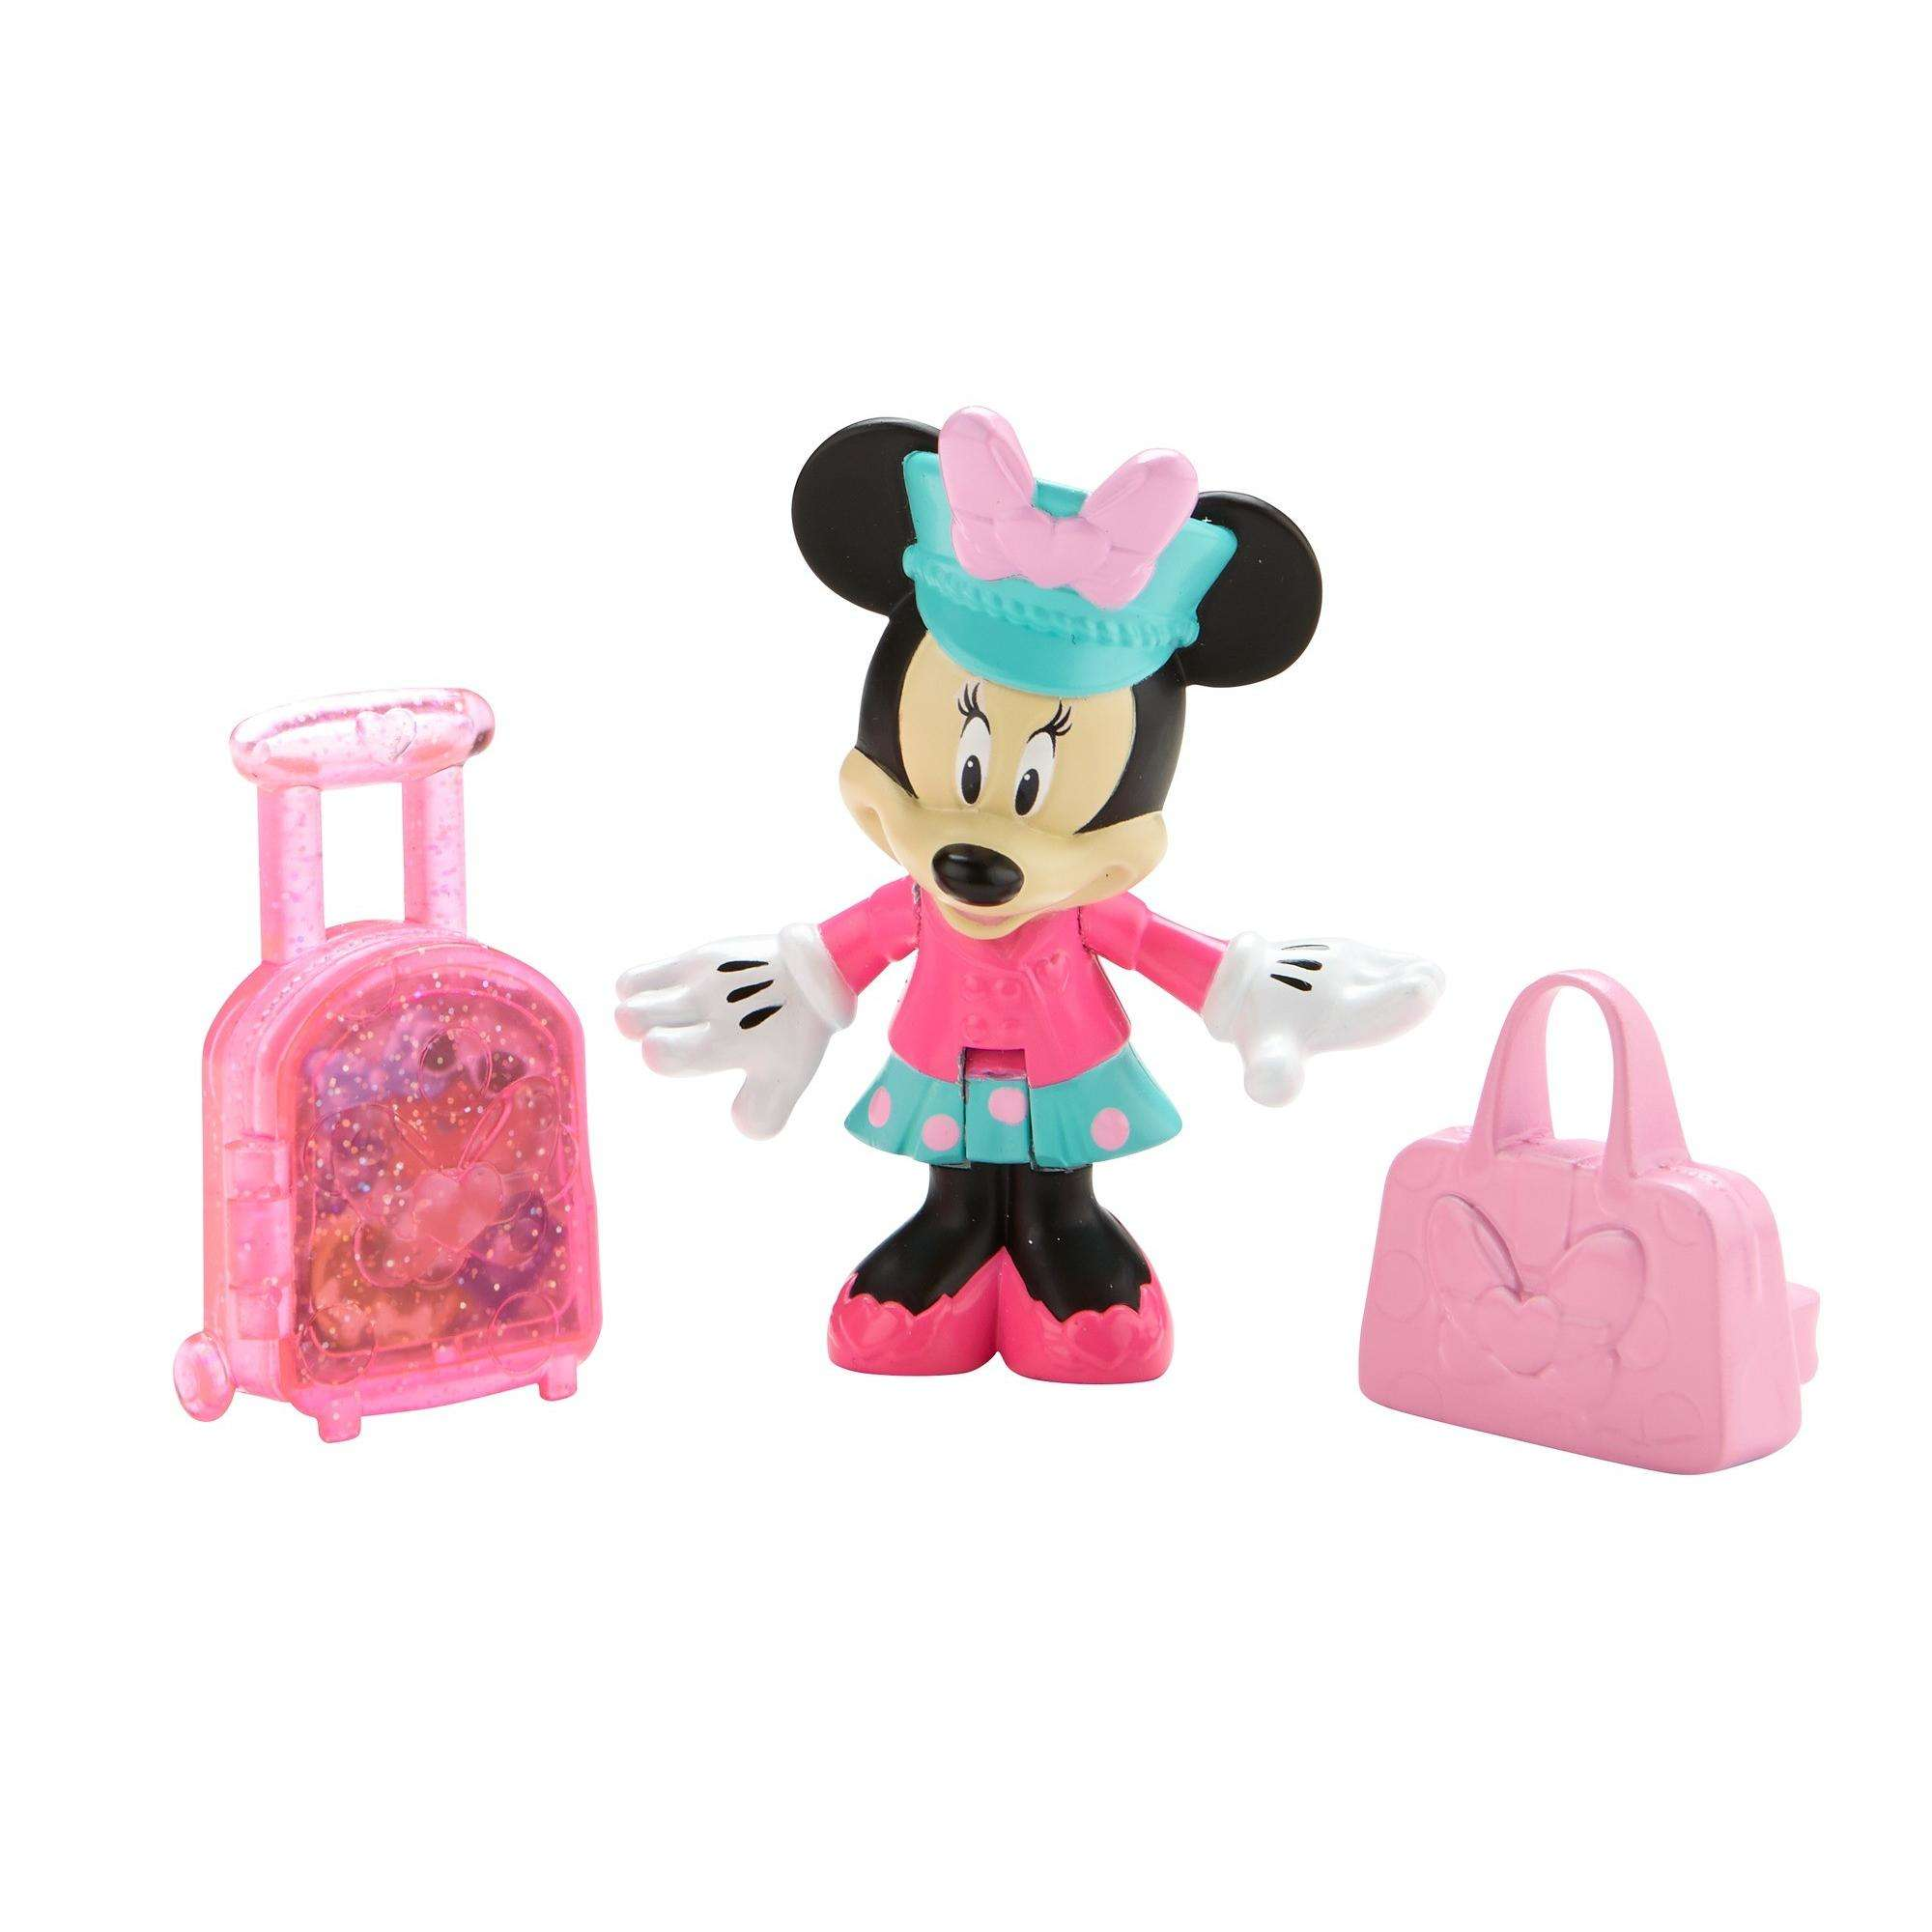 Disney Minnie Mouse - Pilot Minnie